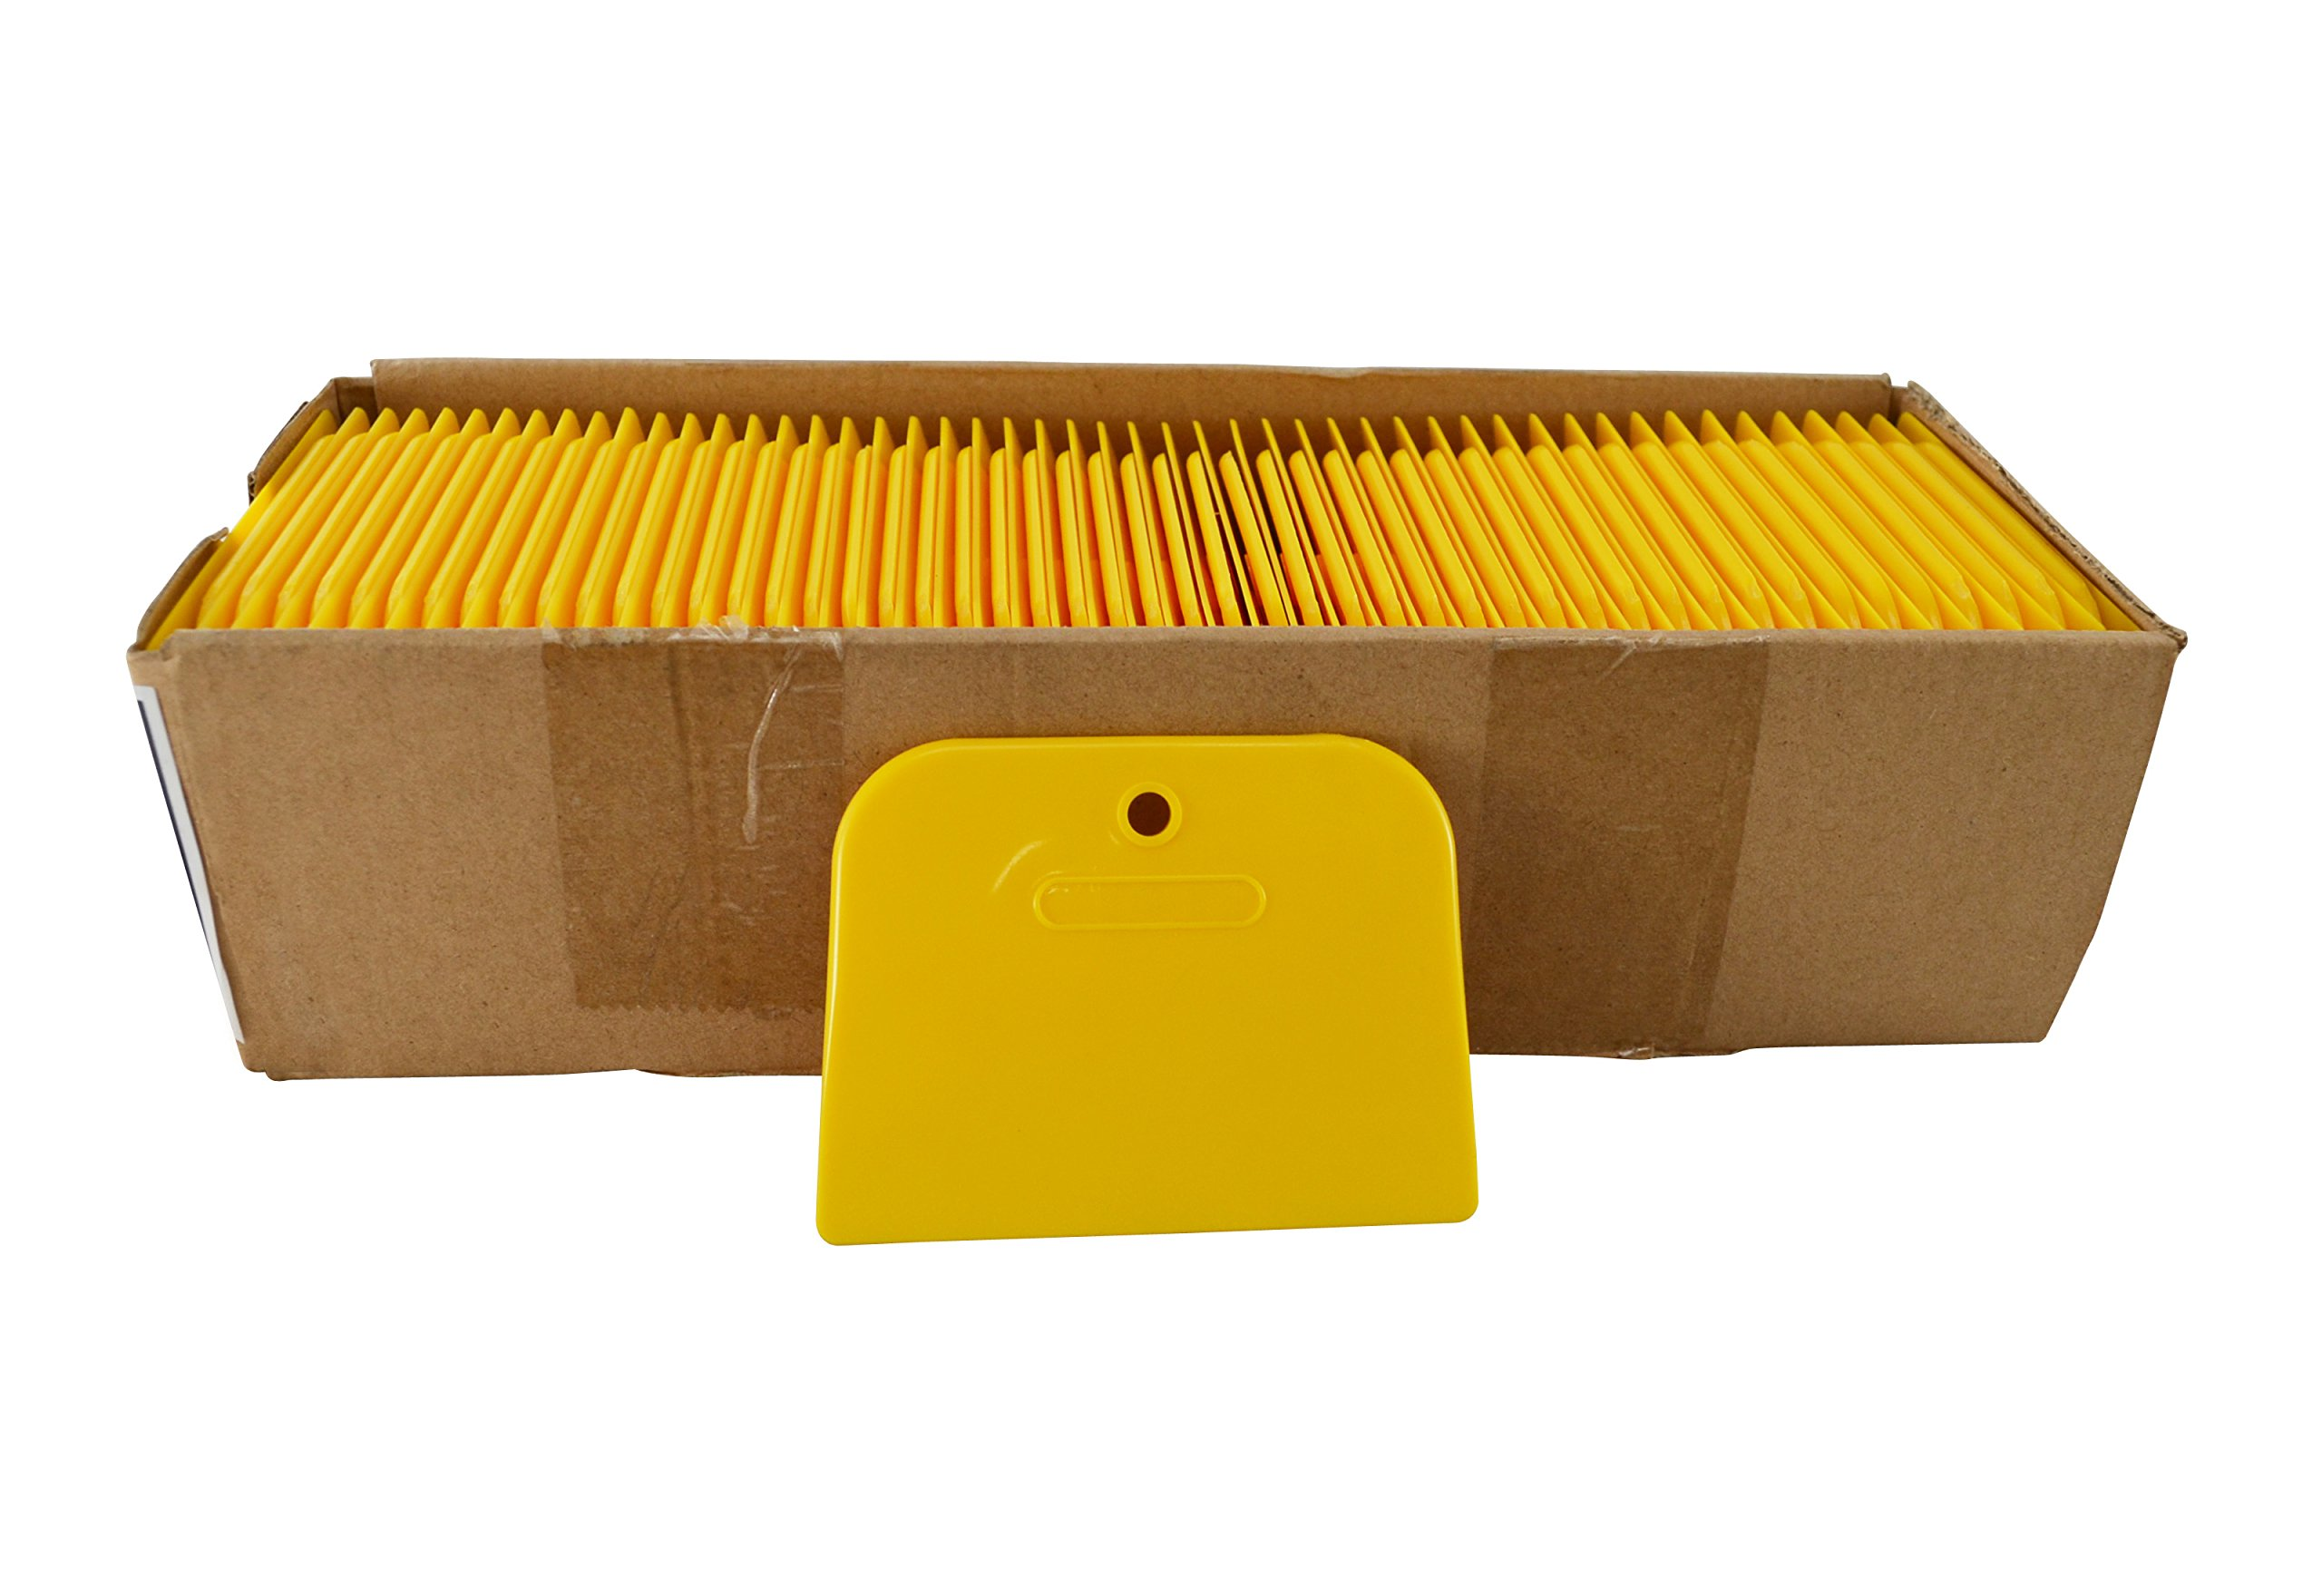 Astro 4526 Yellow 4'' Plastic Spreader, Box of 100